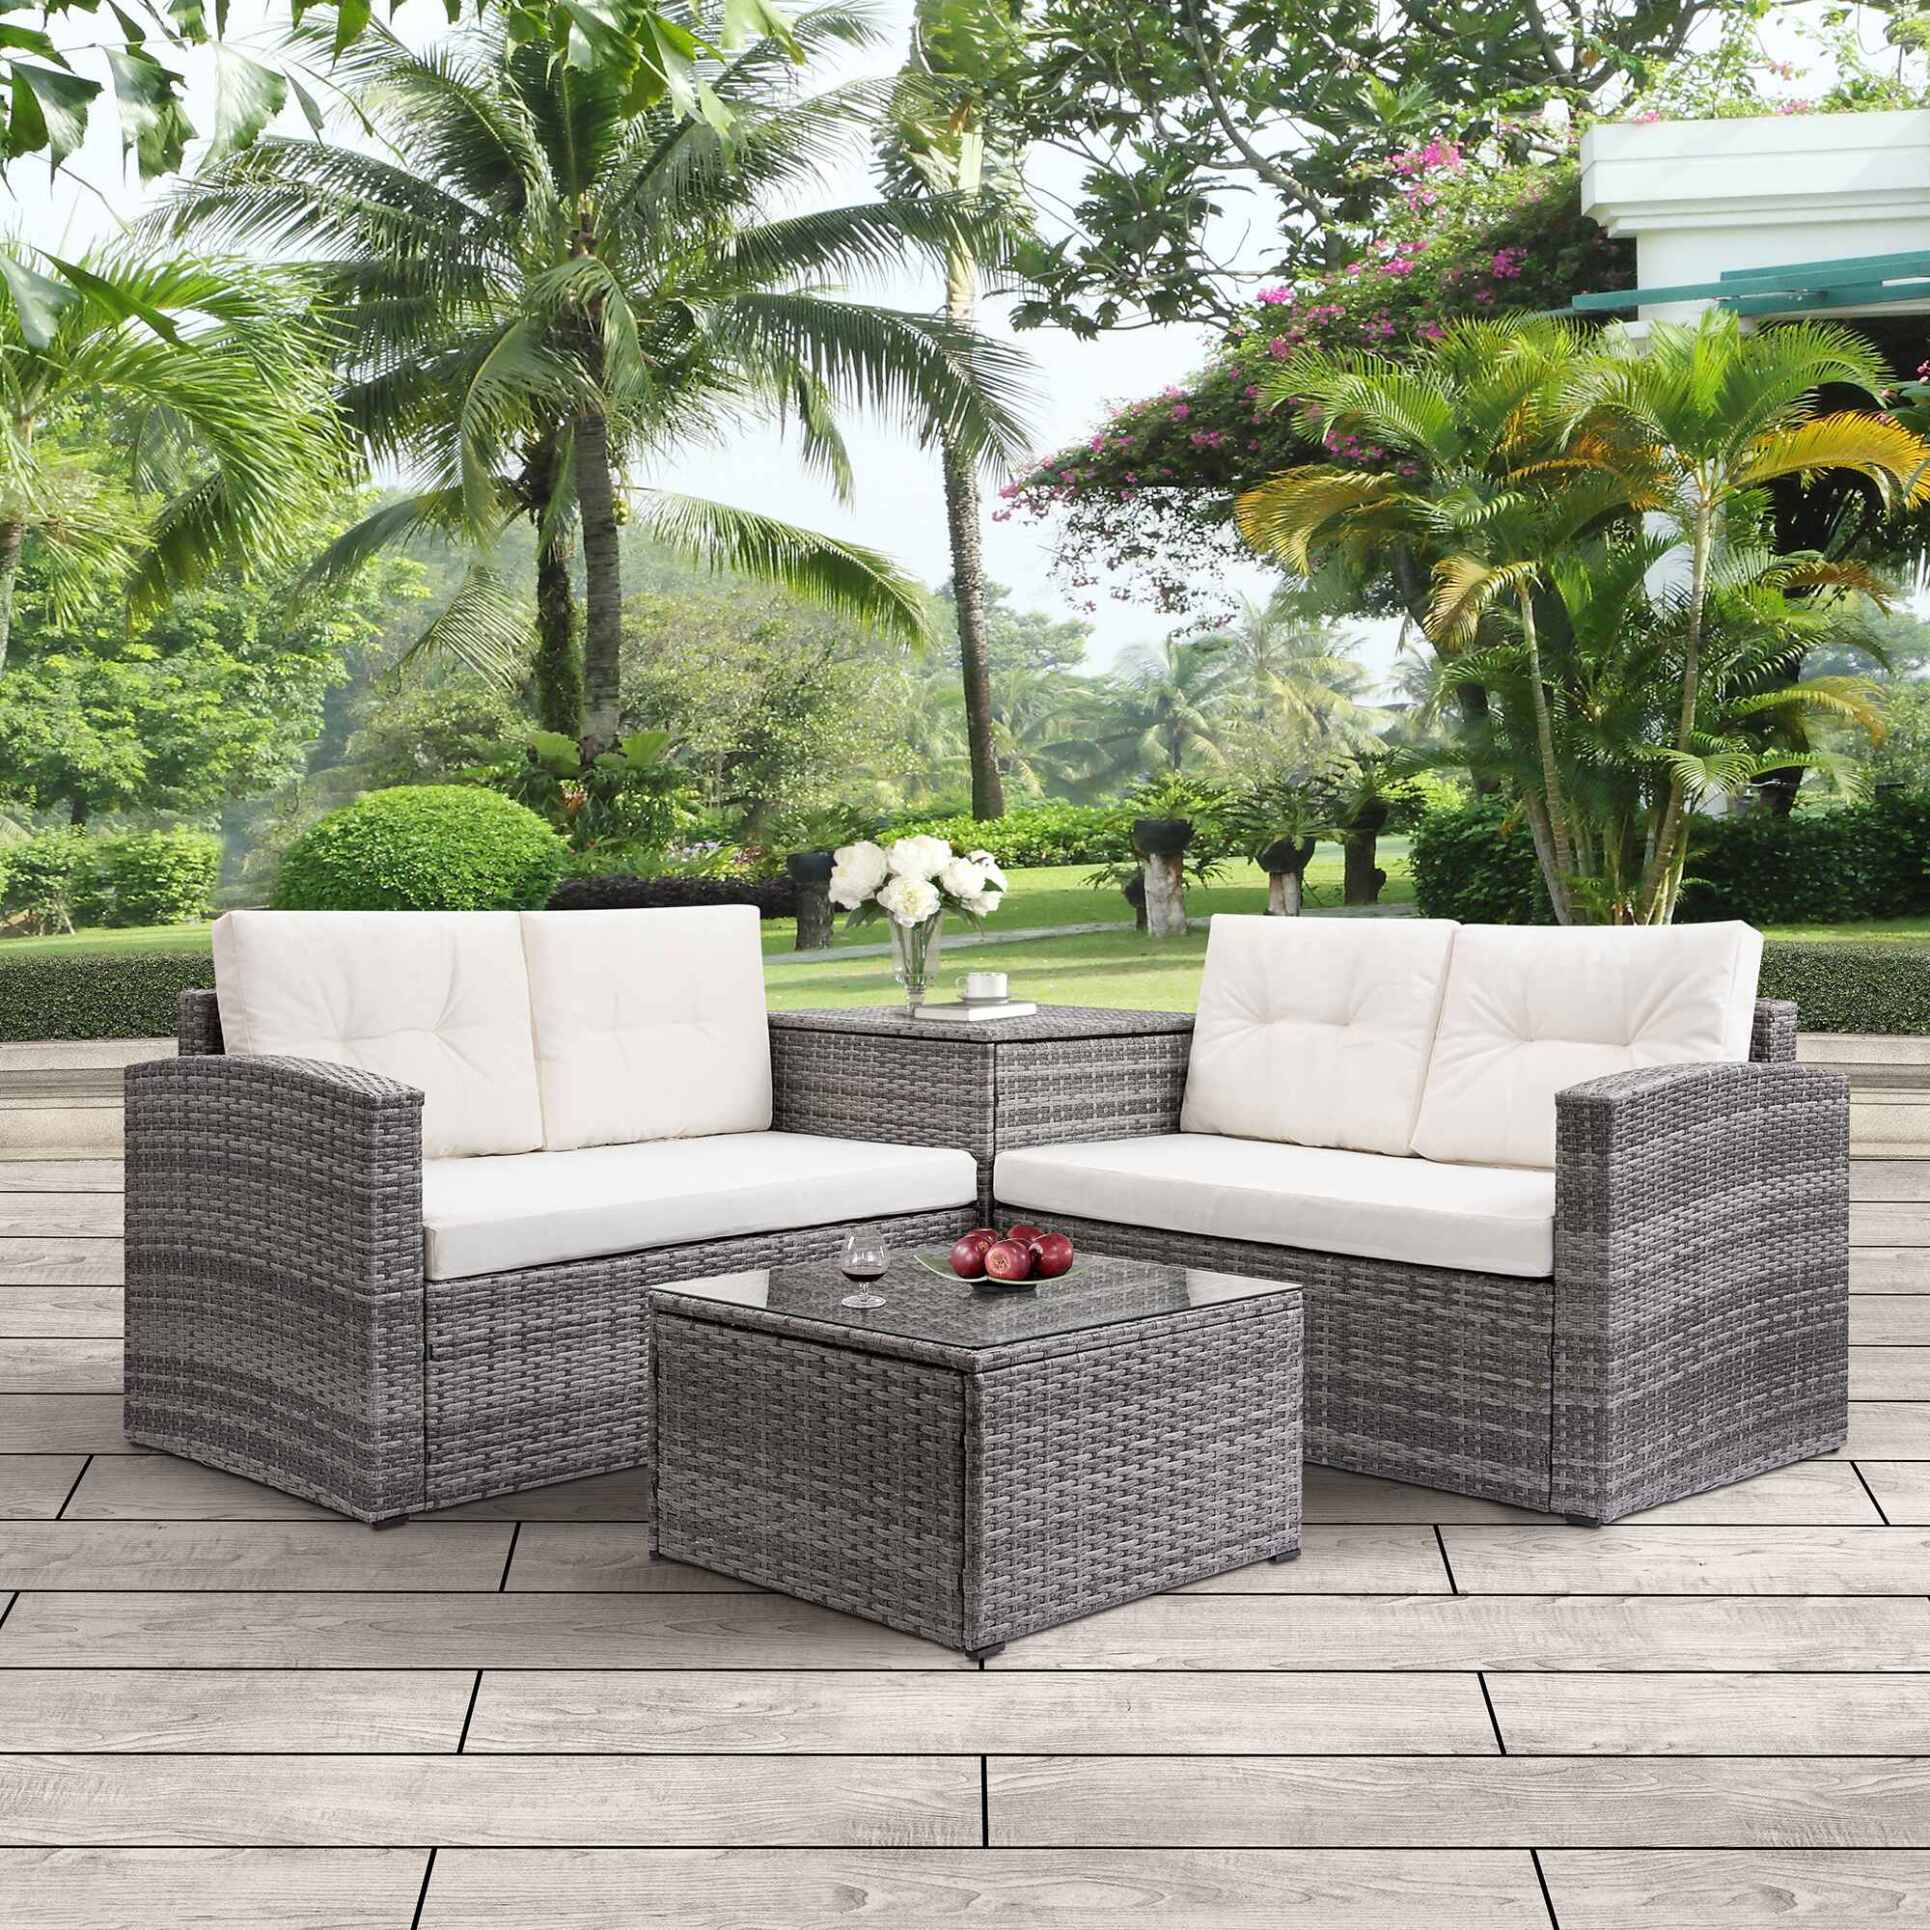 Better Homes And Gardens Replacement Cushions Azalea Ridge, Rattan Wicker Patio Furniture 4 Piece Patio Furniture Sofa Sets With Loveseat Sofa Storage Box Tempered Glass Coffee Table All Weather Patio Conversation Set With Cushions For Backyard Garden Pool Walmart Com